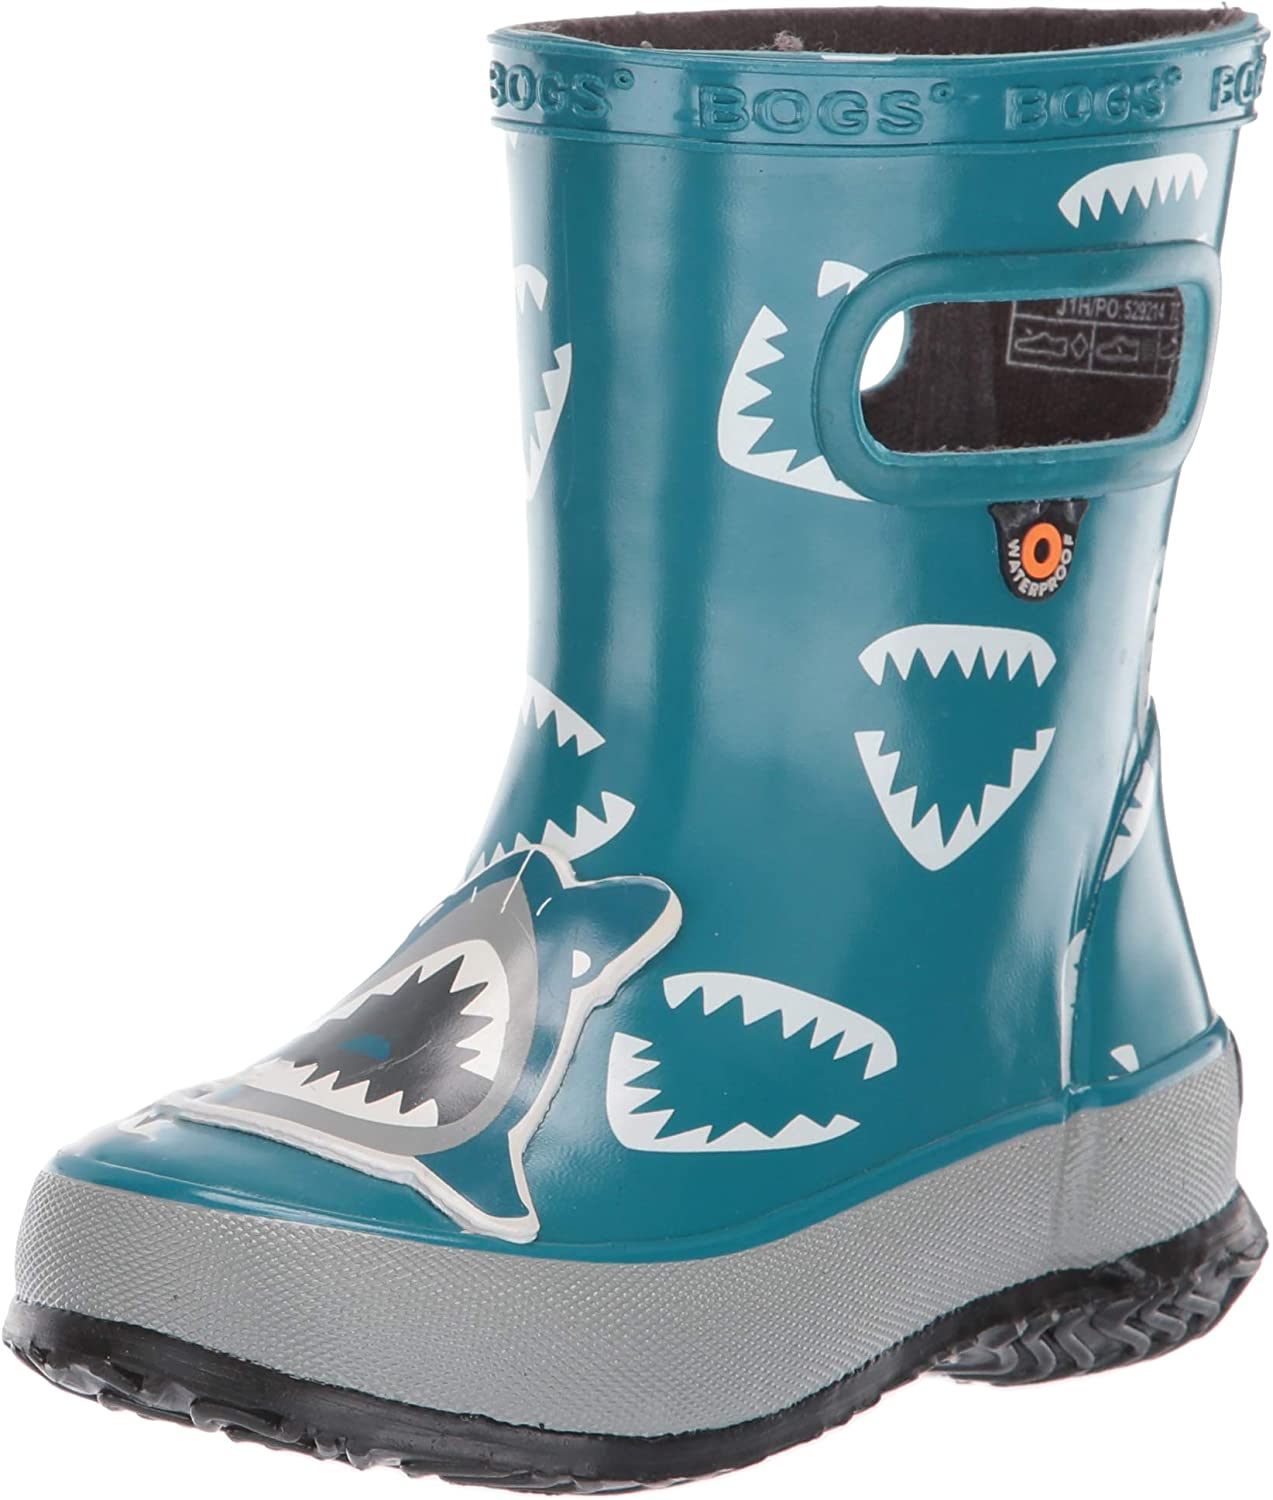 BOGS Kids' Skipper Waterproof Rain Boot